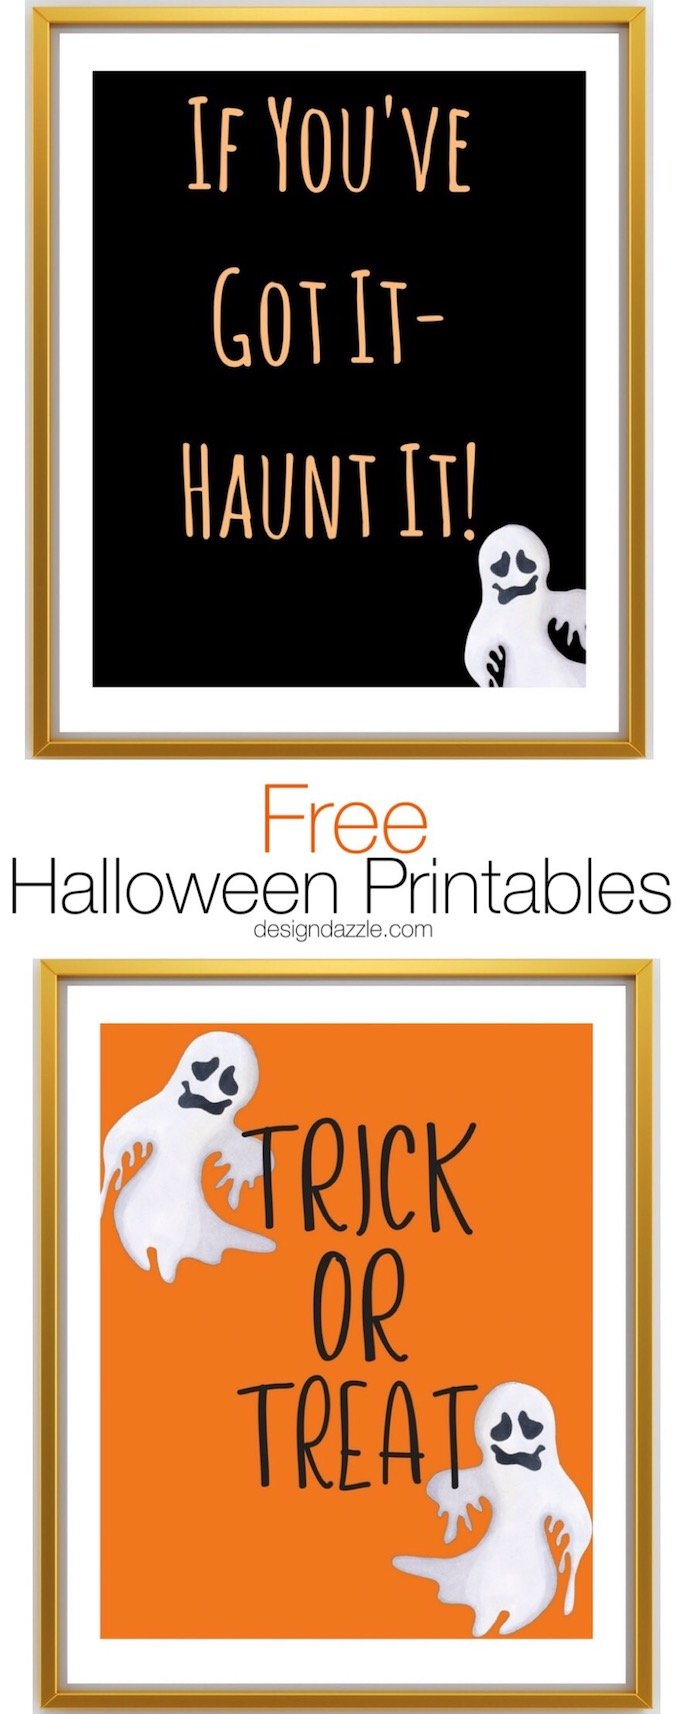 I love decorating with printables! The options are endless with these cute Halloween printables...and don't you love that they are FREE?! | free printables | free halloween decor | halloween printable ideas | halloween decor | decorating for halloween || Design Dazzle #halloweendecor